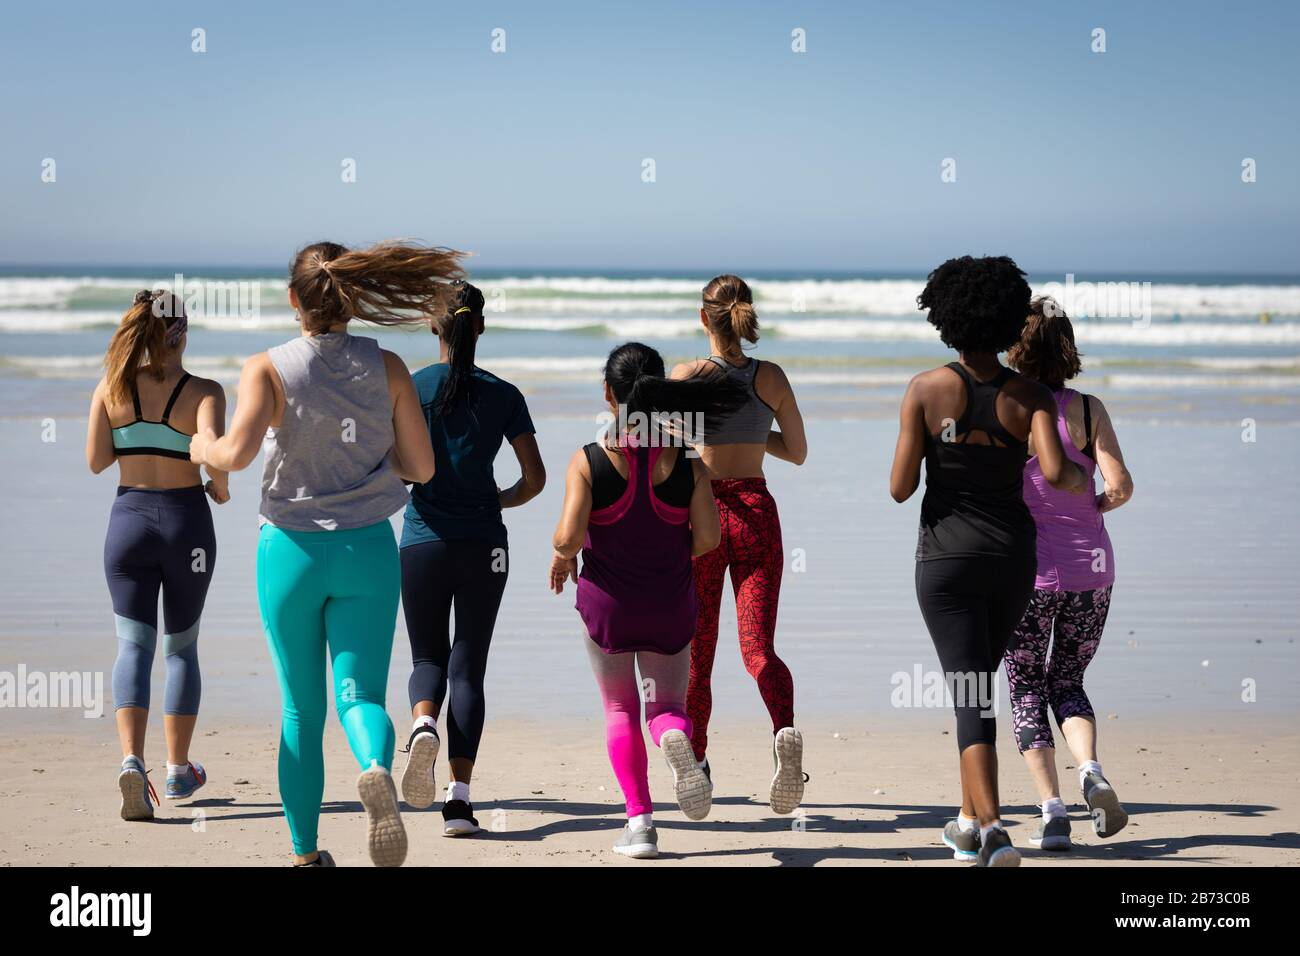 Rear view of women running at the beach Stock Photo